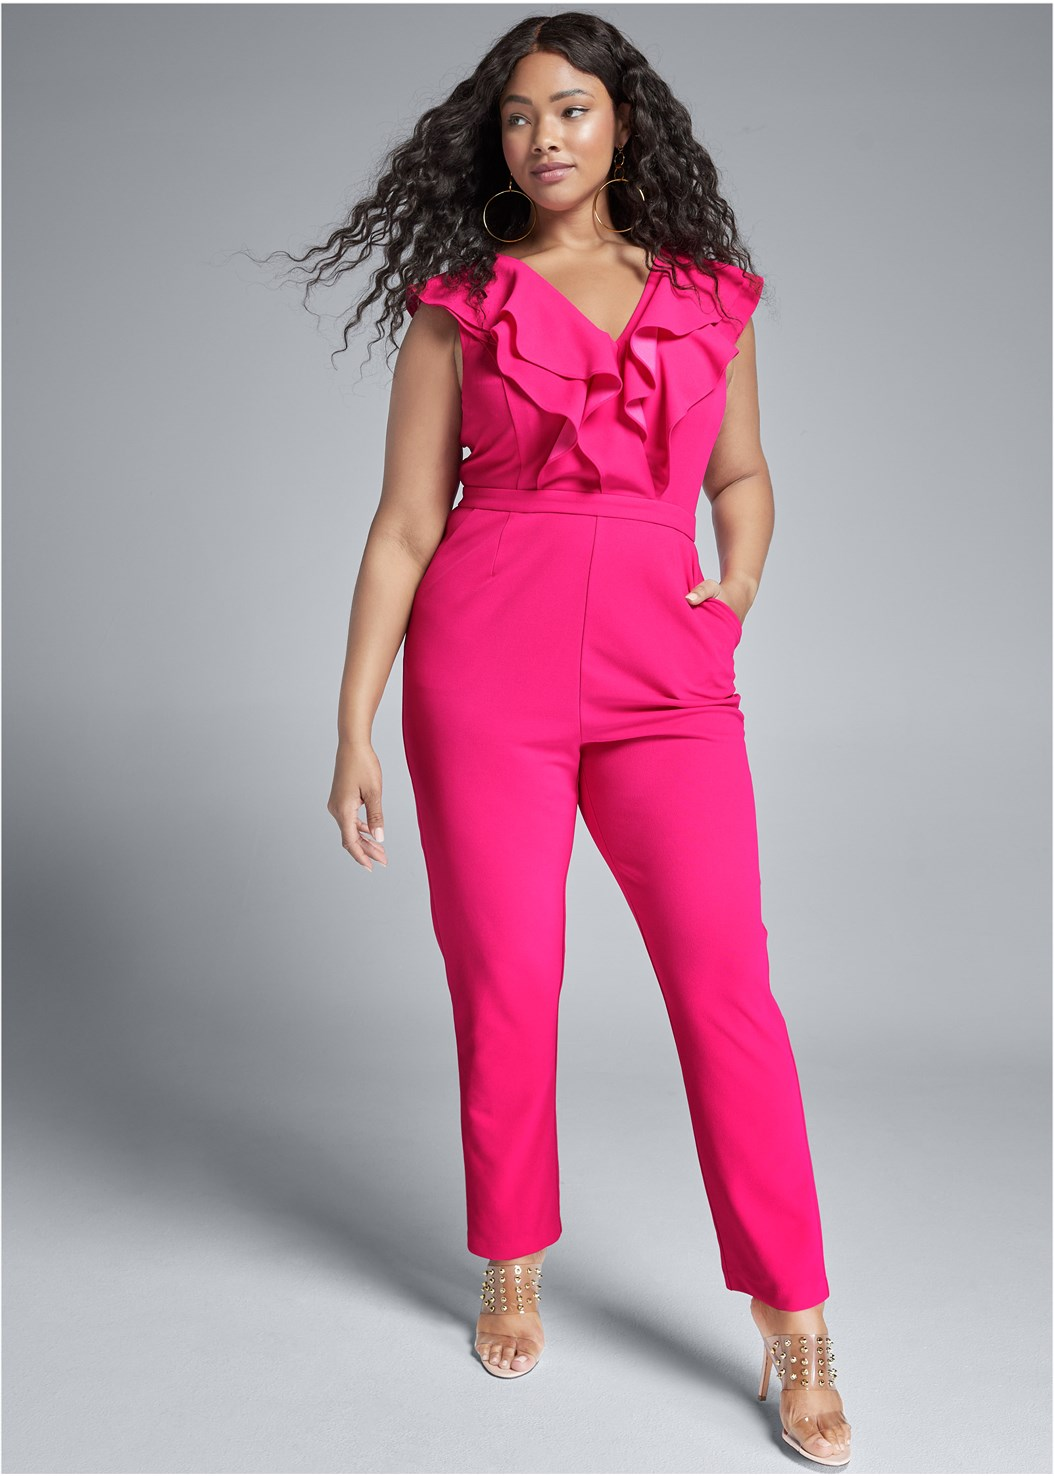 Ruffle Jumpsuit,Embellished Lucite Heel